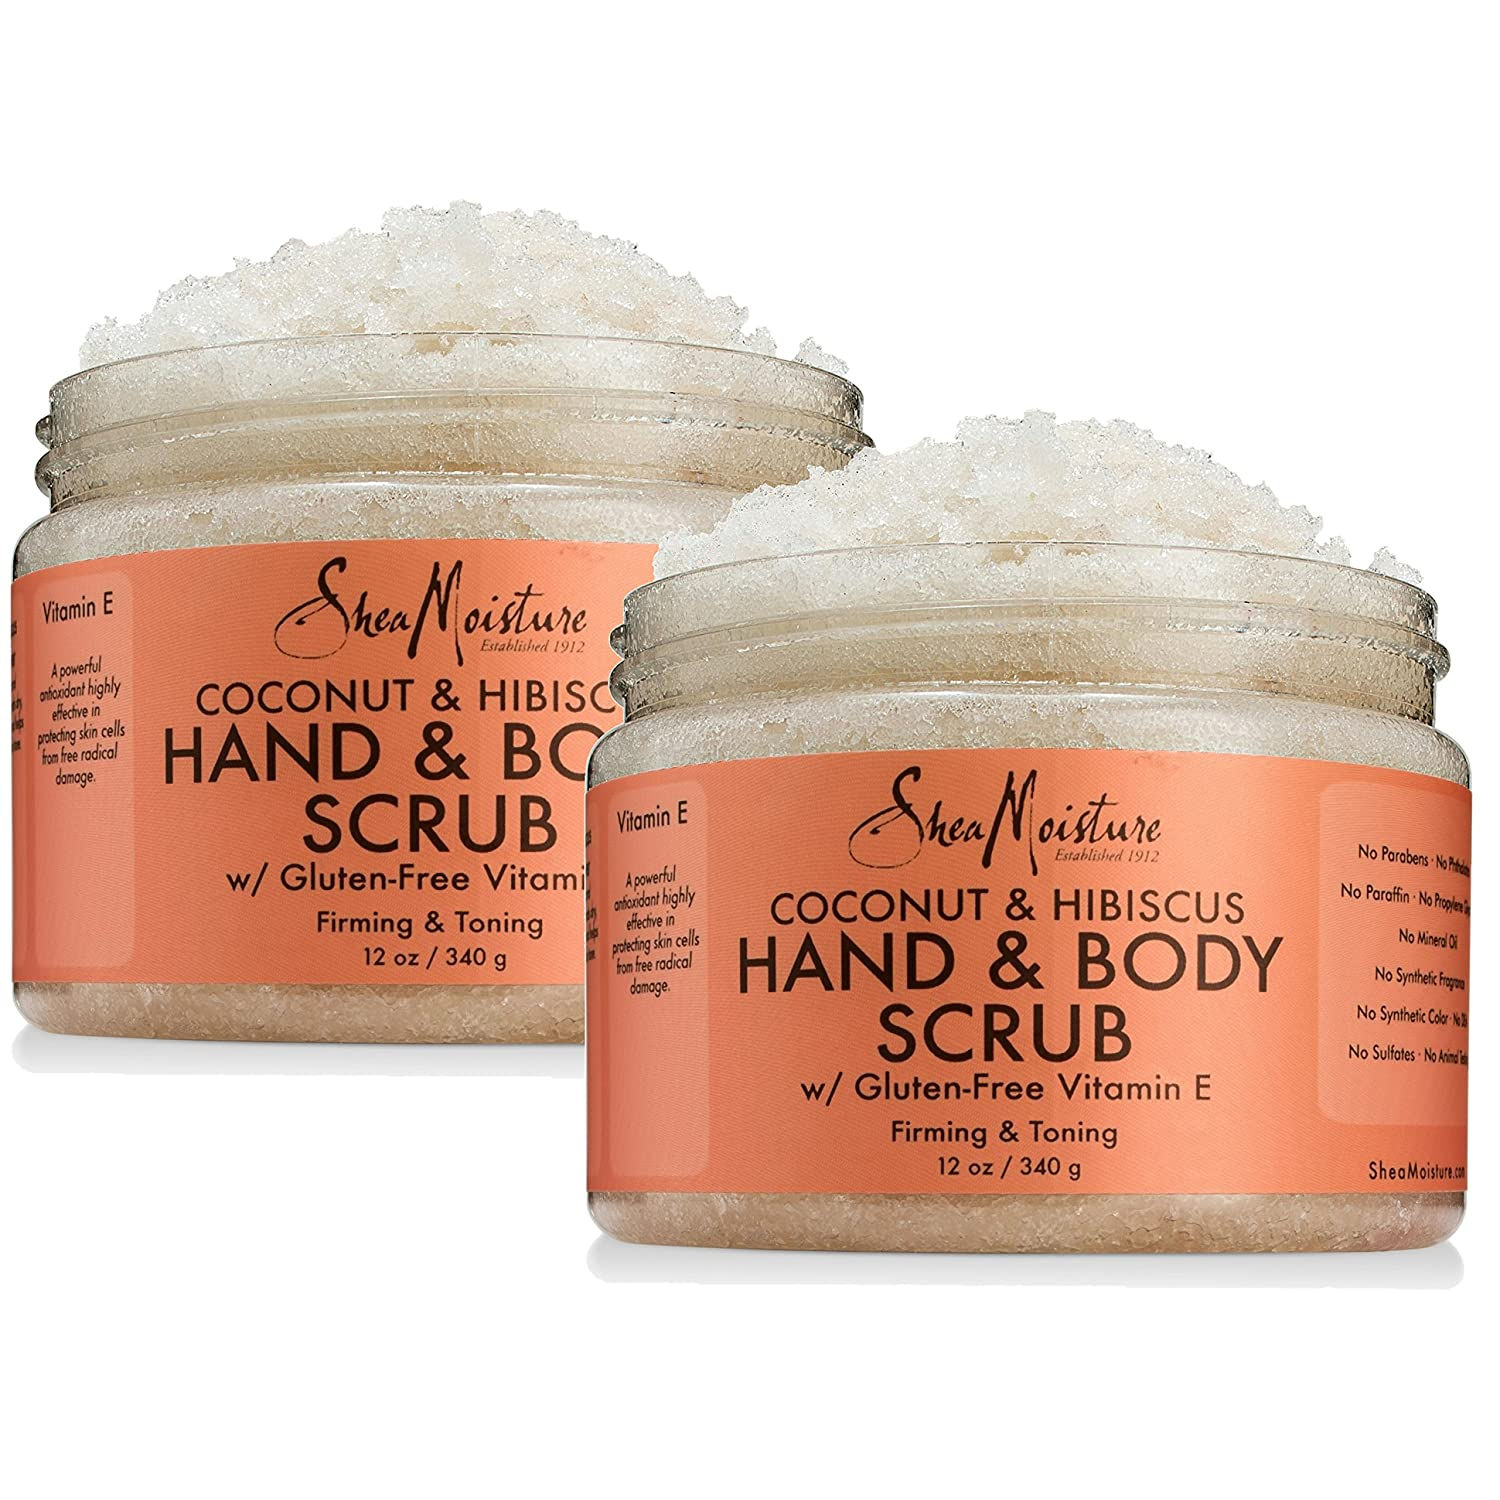 Shea Moisture Coconut & Hibiscus Hand & Body Scrub, 12 Oz, Pack of 2 : Beauty